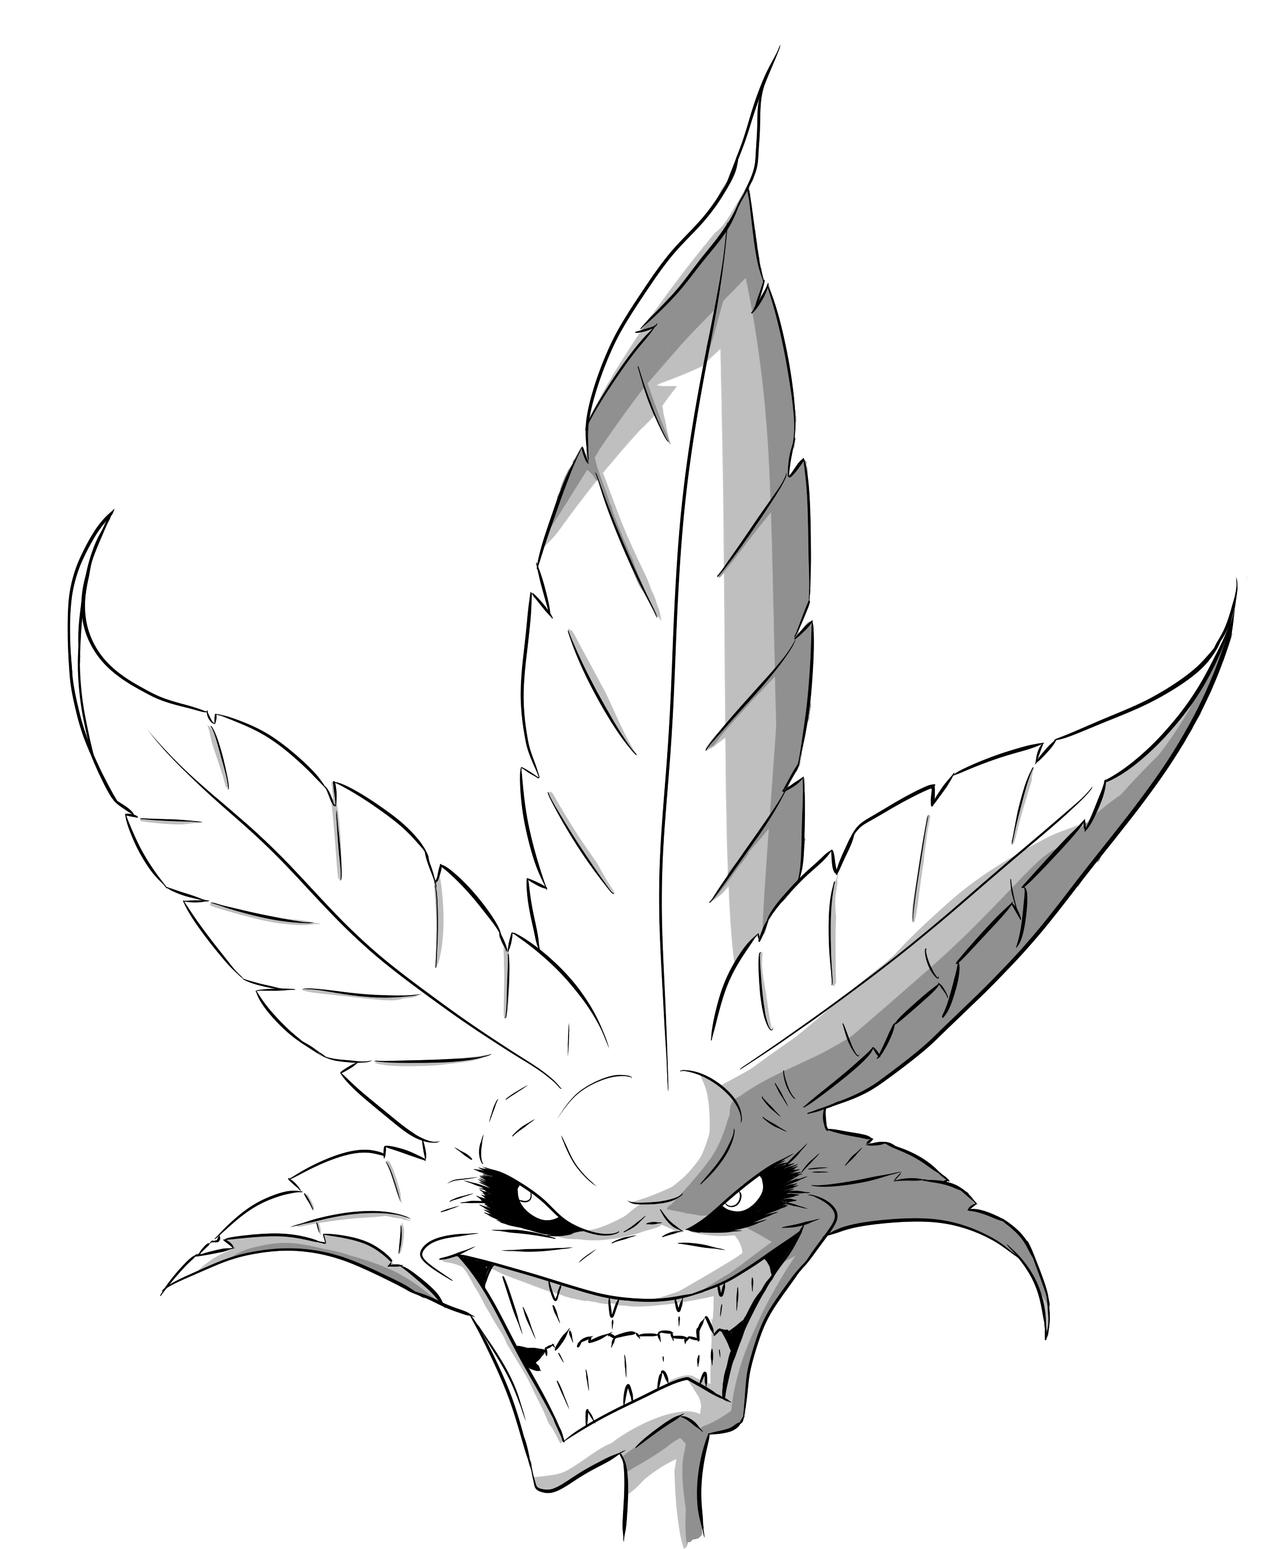 Wicked Stoner Relined By Gecko6482 On DeviantArt